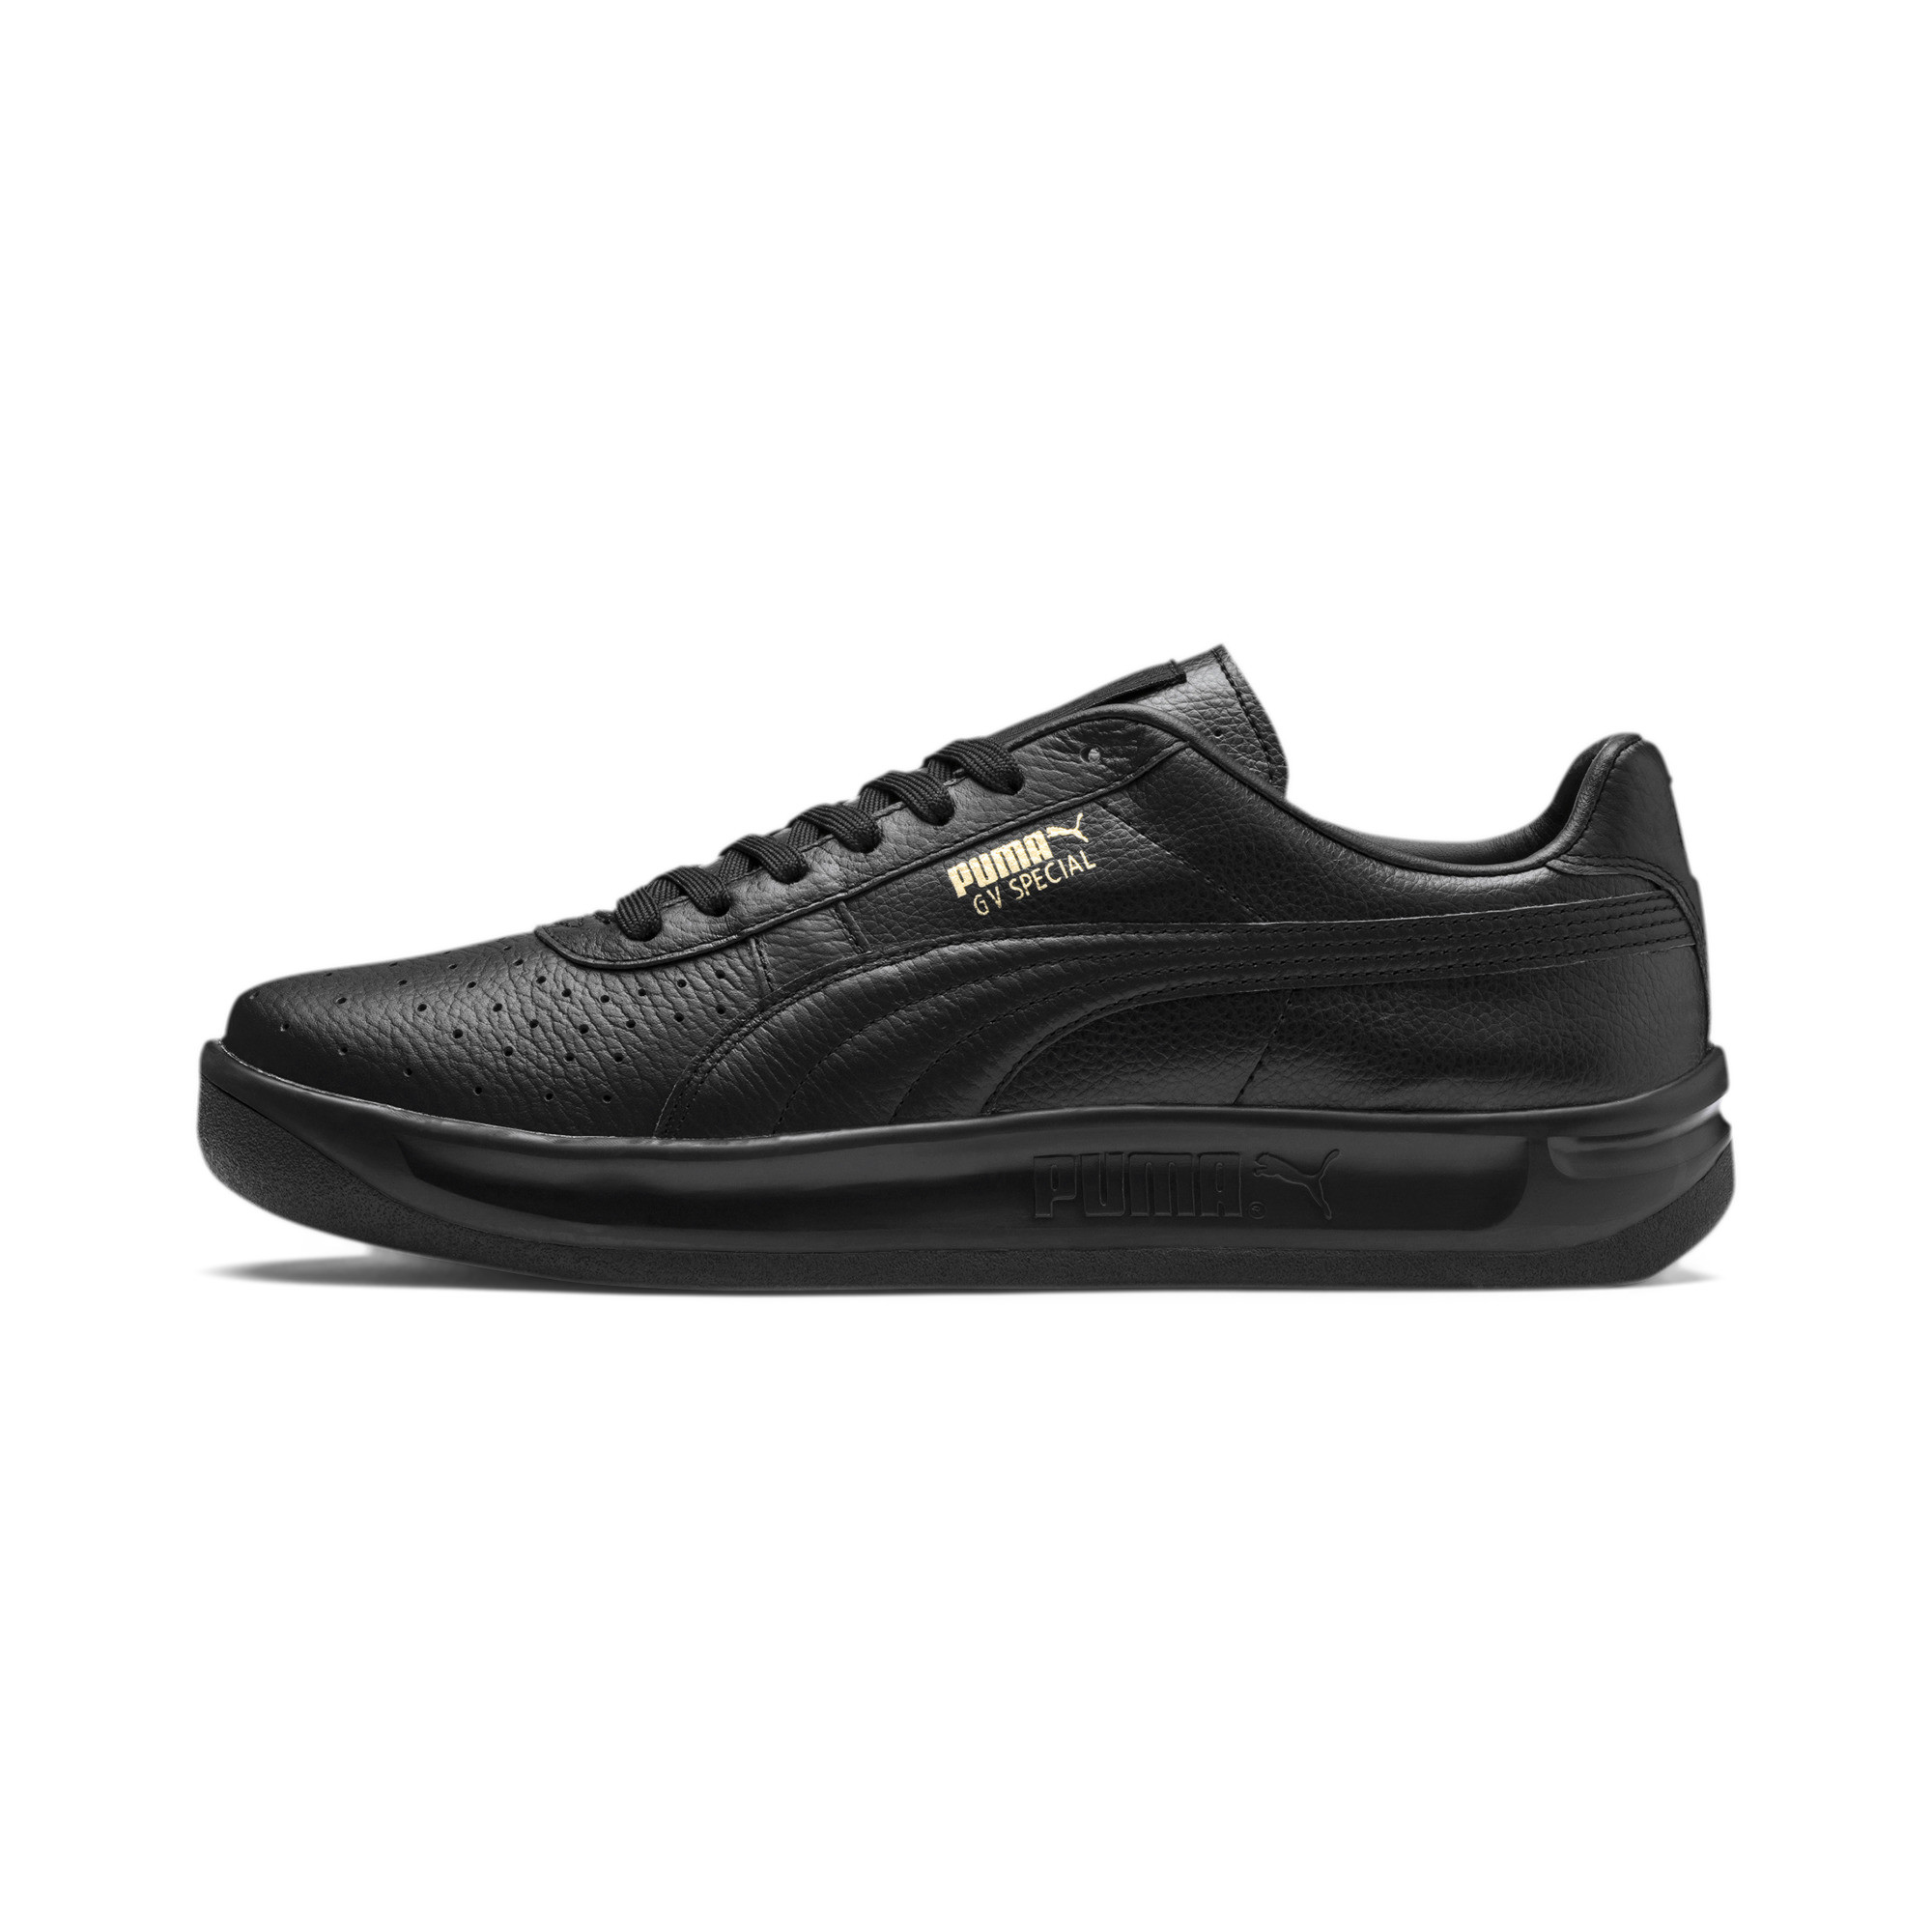 PUMA-Men-039-s-GV-Special-Sneakers thumbnail 20